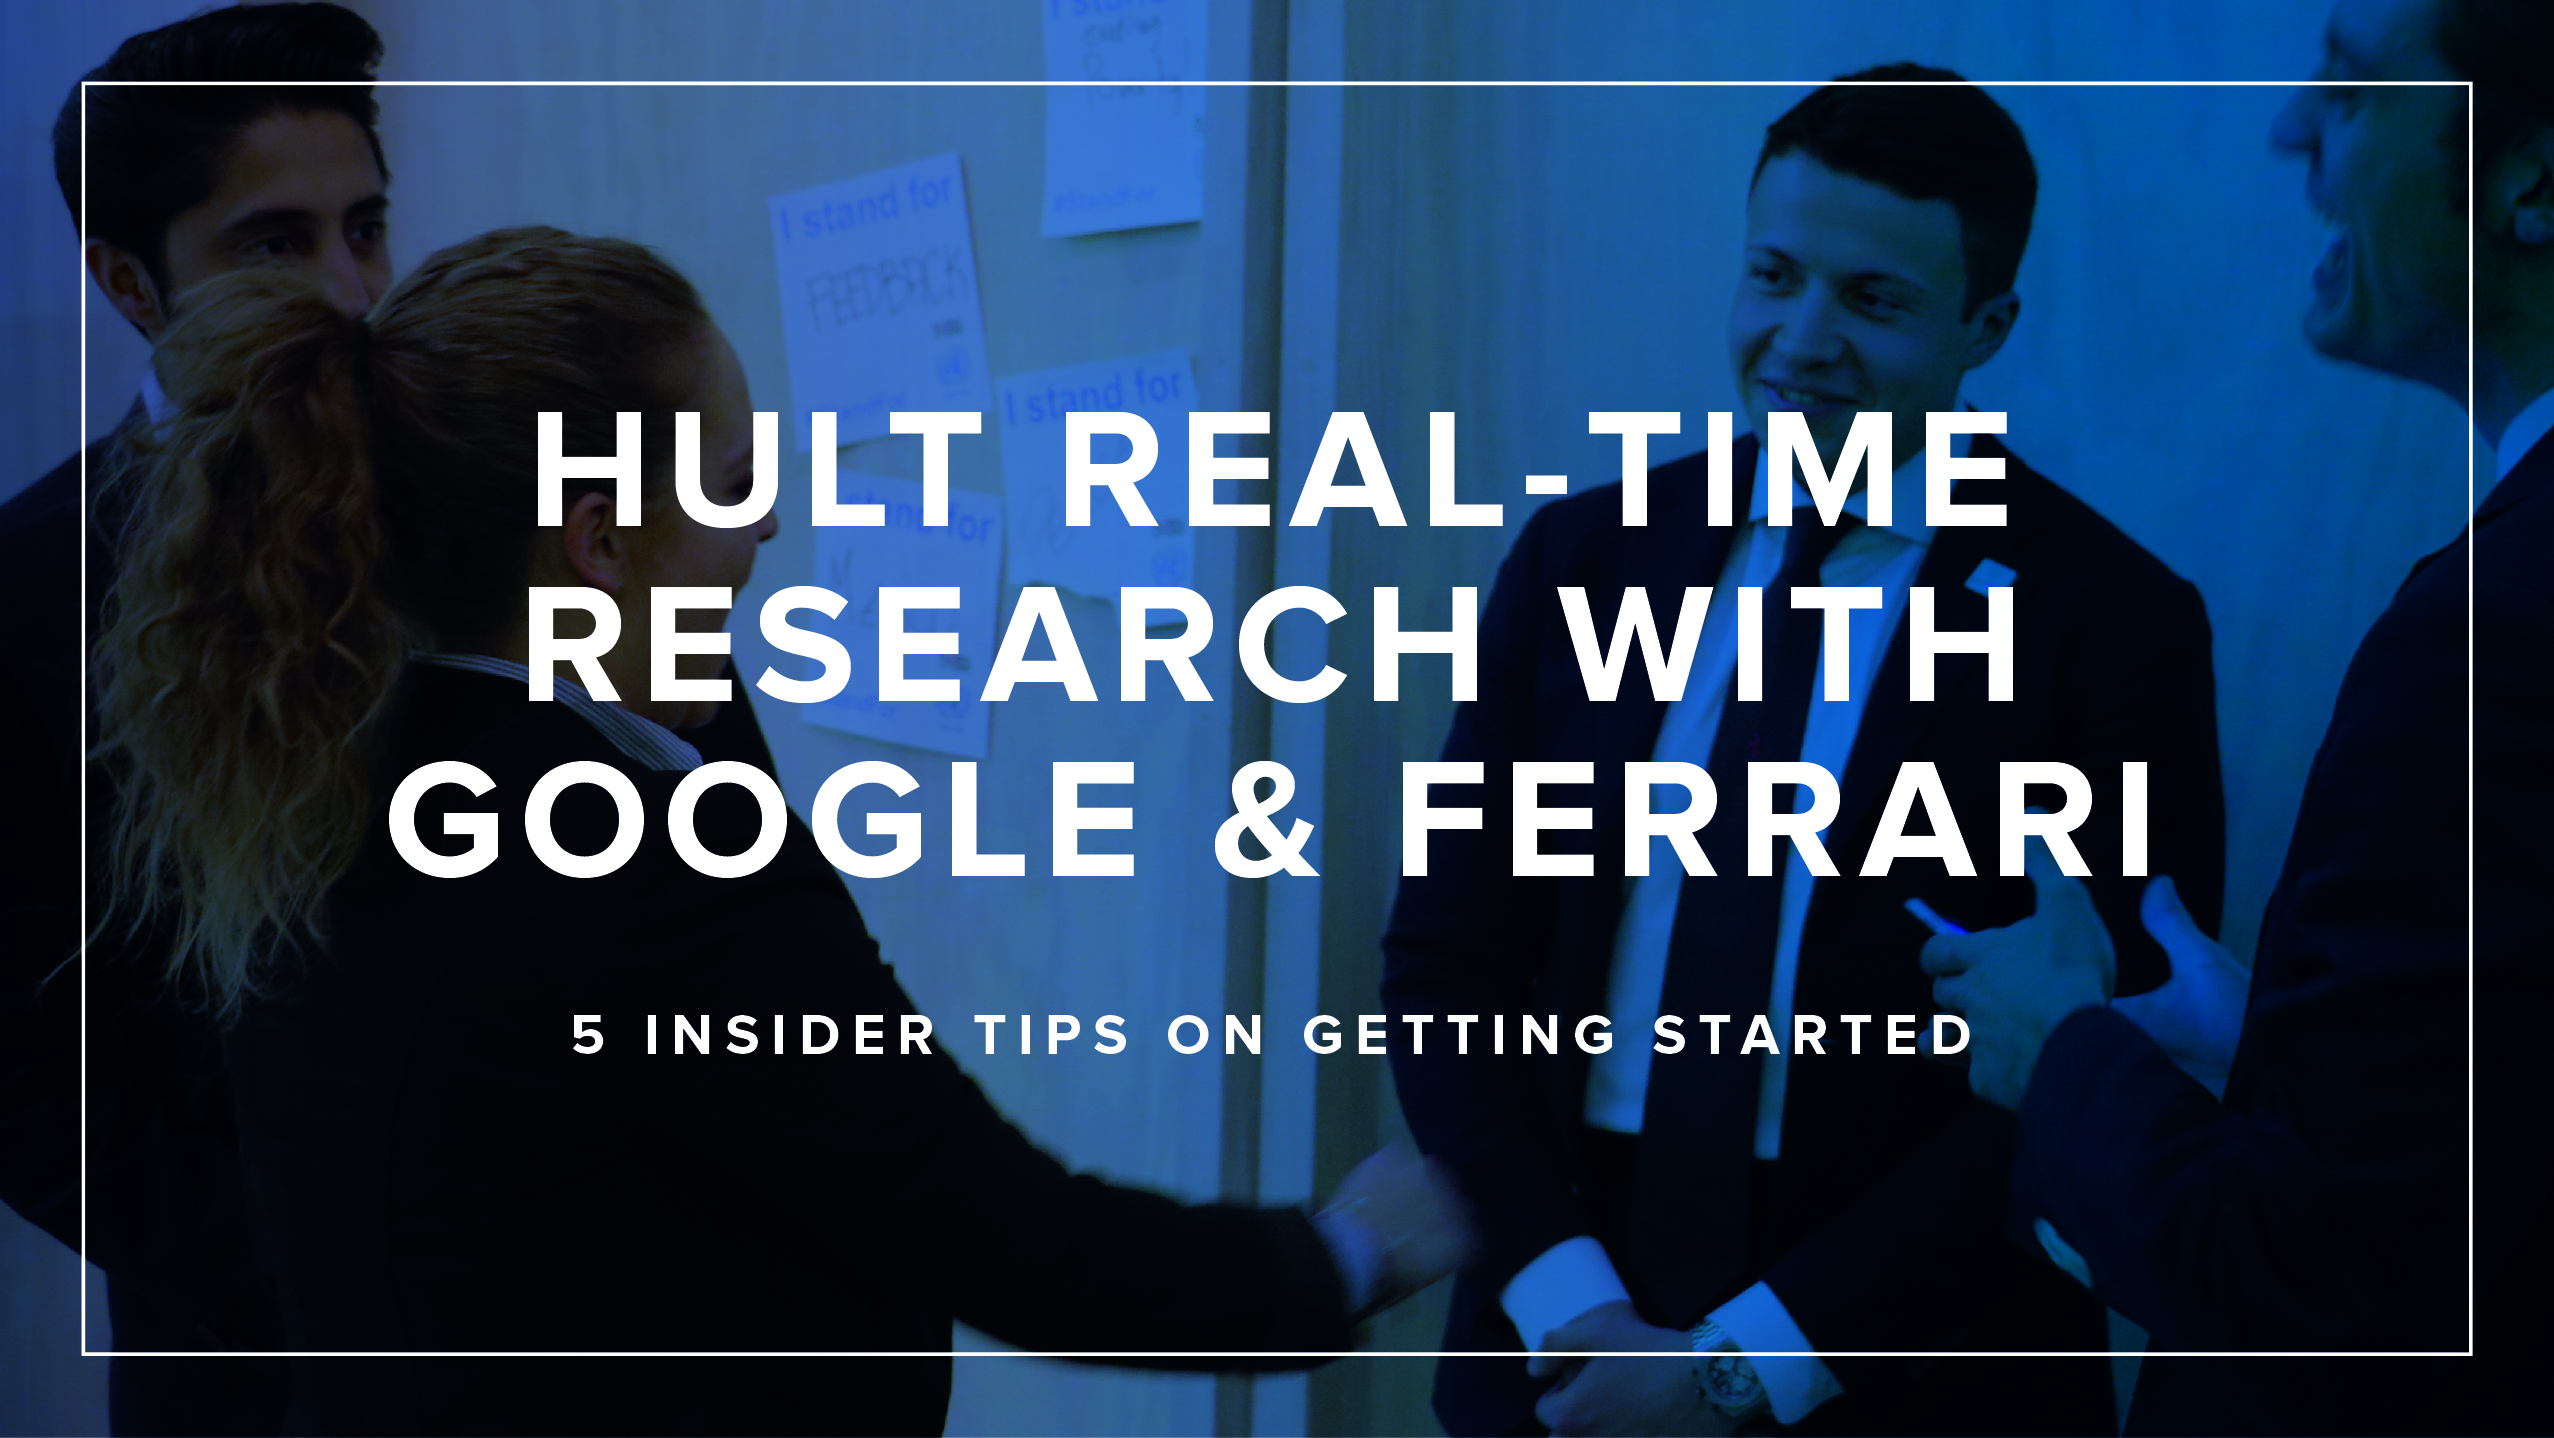 Hult_Realtime_Research